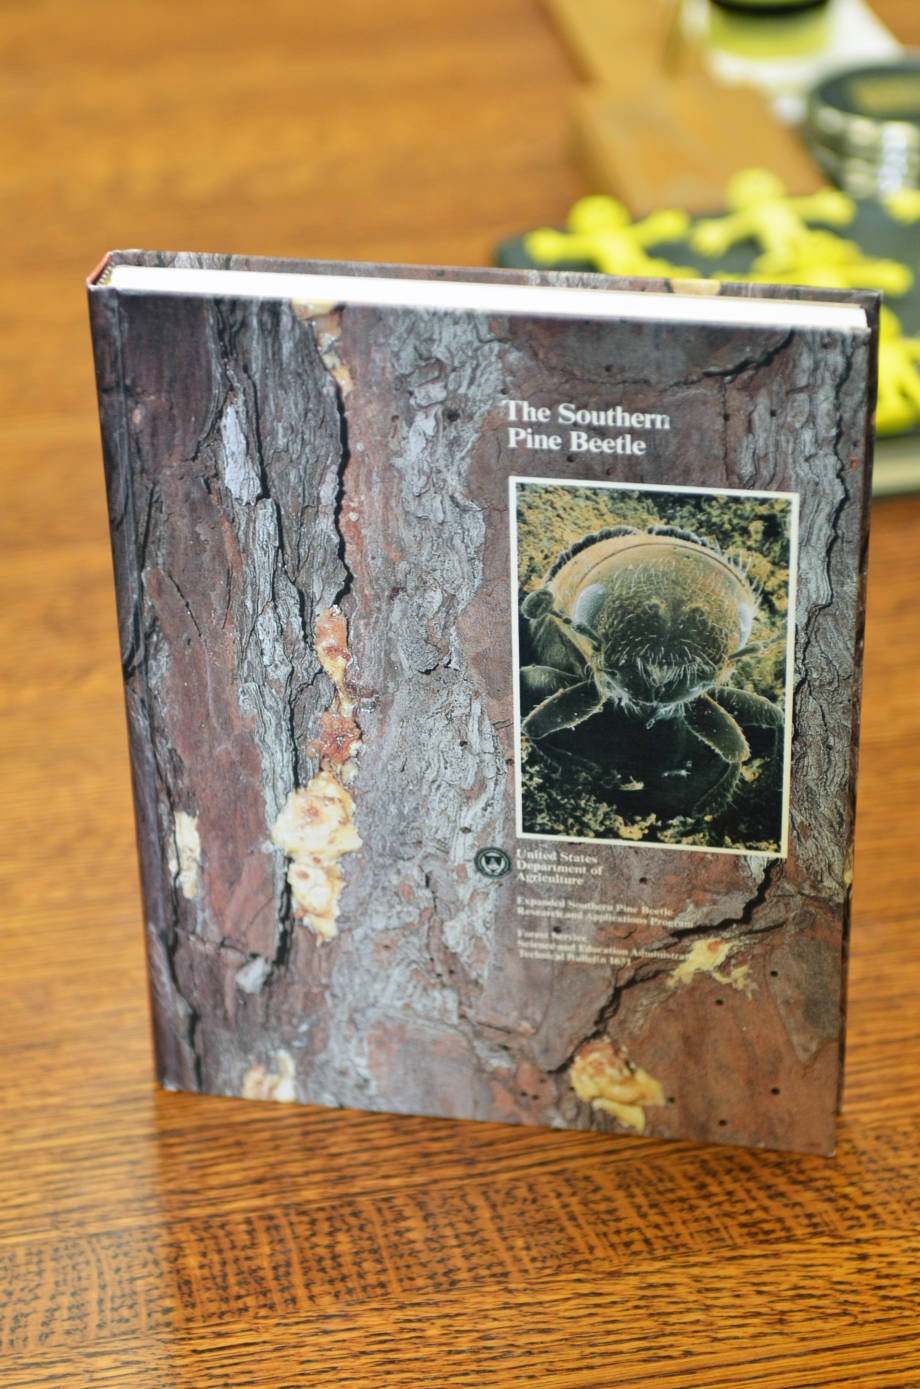 While at Texas A&M, Tom Payne serves as the research coordinator of the Southern Pine Beetle Program, sponsored by the USDA. Pictured is a book that resulted from the project's research. On the cover is a photo of a beetle that Tom took. Photo by Stephen Schmidt.